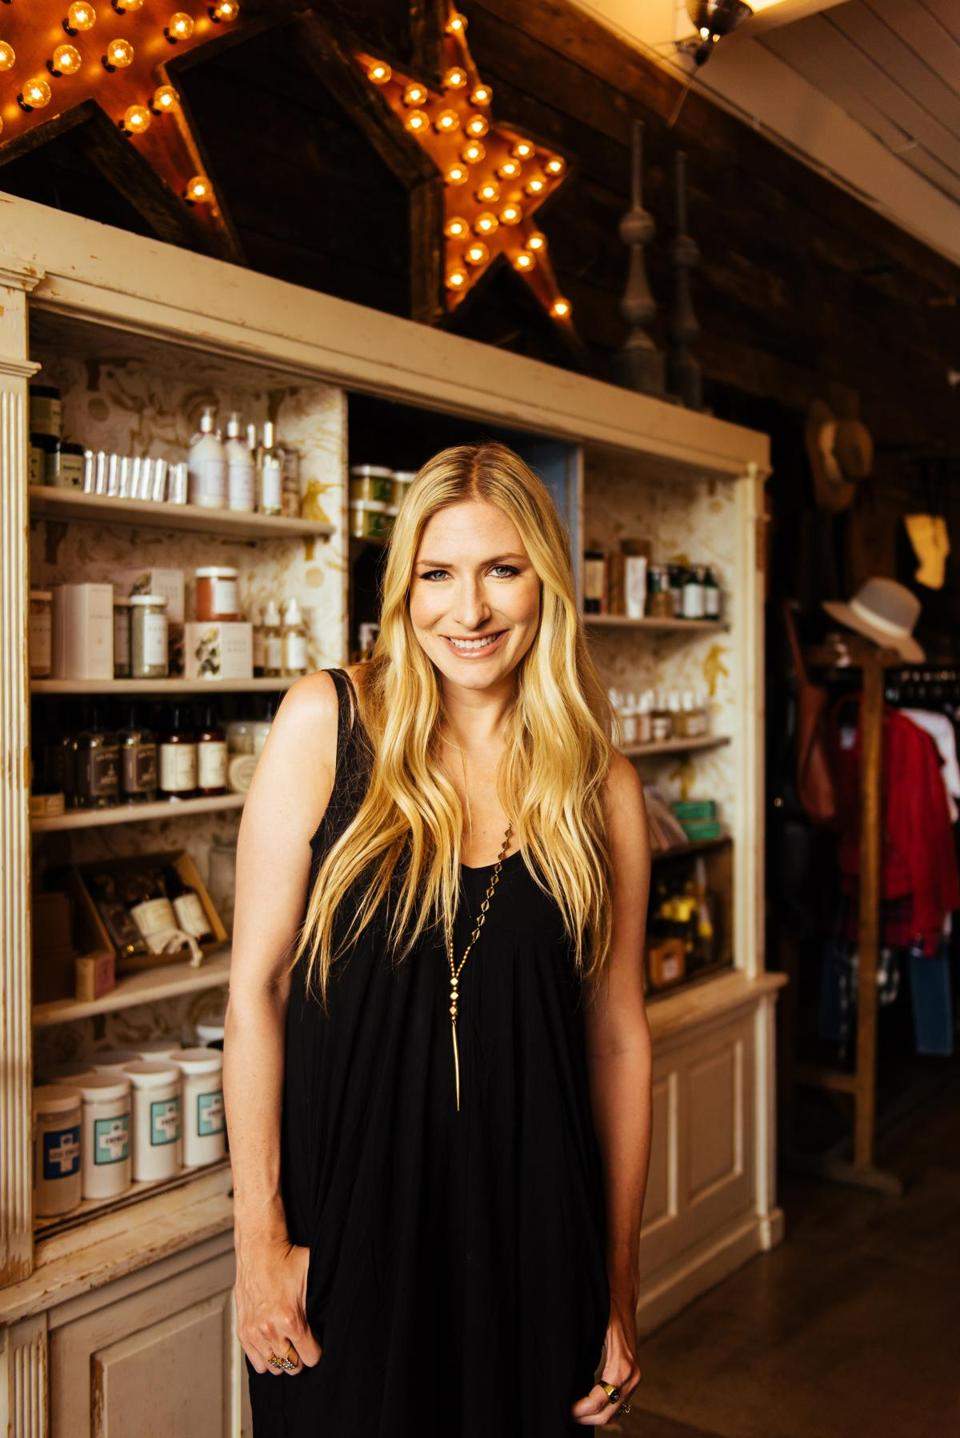 Singer-songwriter Holly Williams owns White's Mercantile, a Nashville take on a general store.